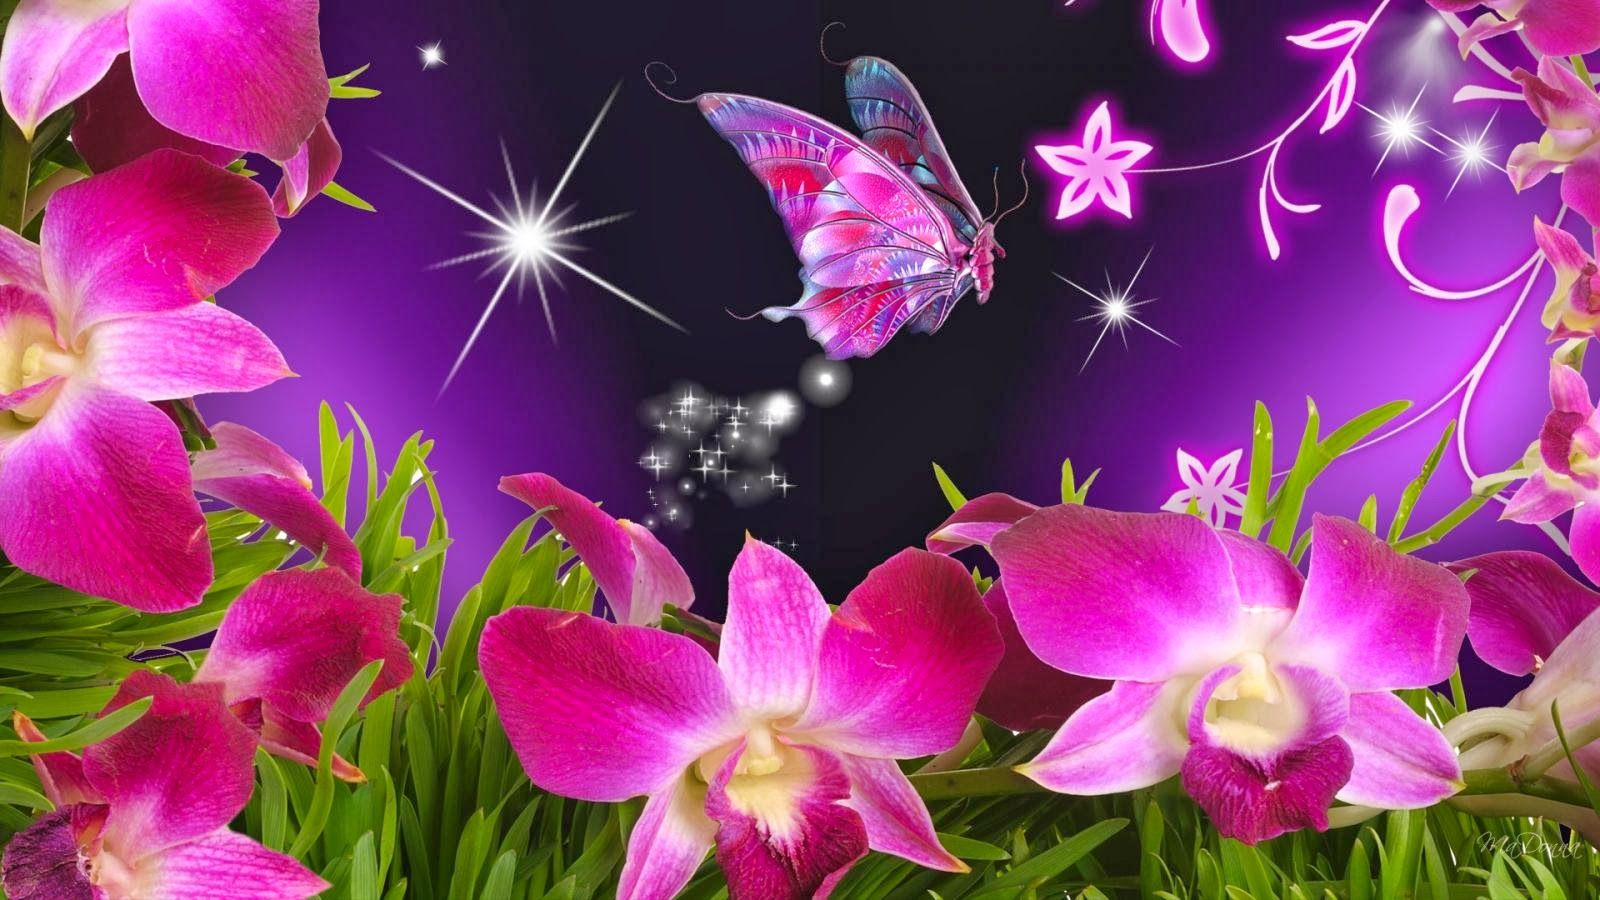 Beautiful wallpapers and images of flowers - Wallpaper Flowers And Butterflies Beautiful Flowers And Butterflies Wallpapers Free Download